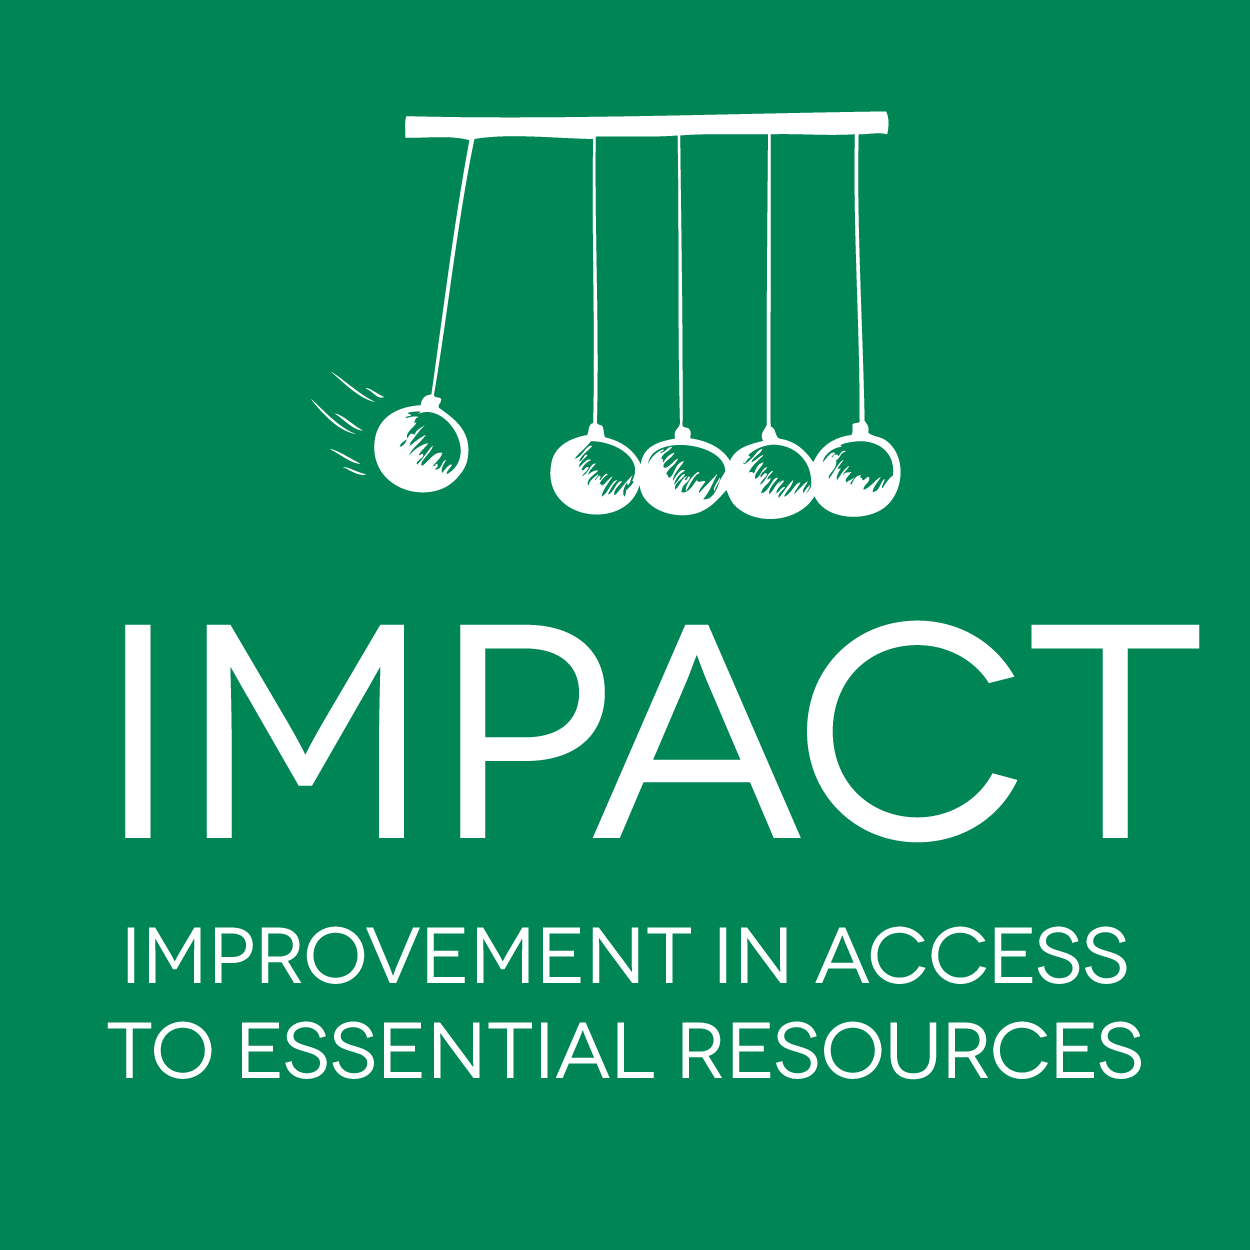 Impact: Introduction to Access to Essential Resources